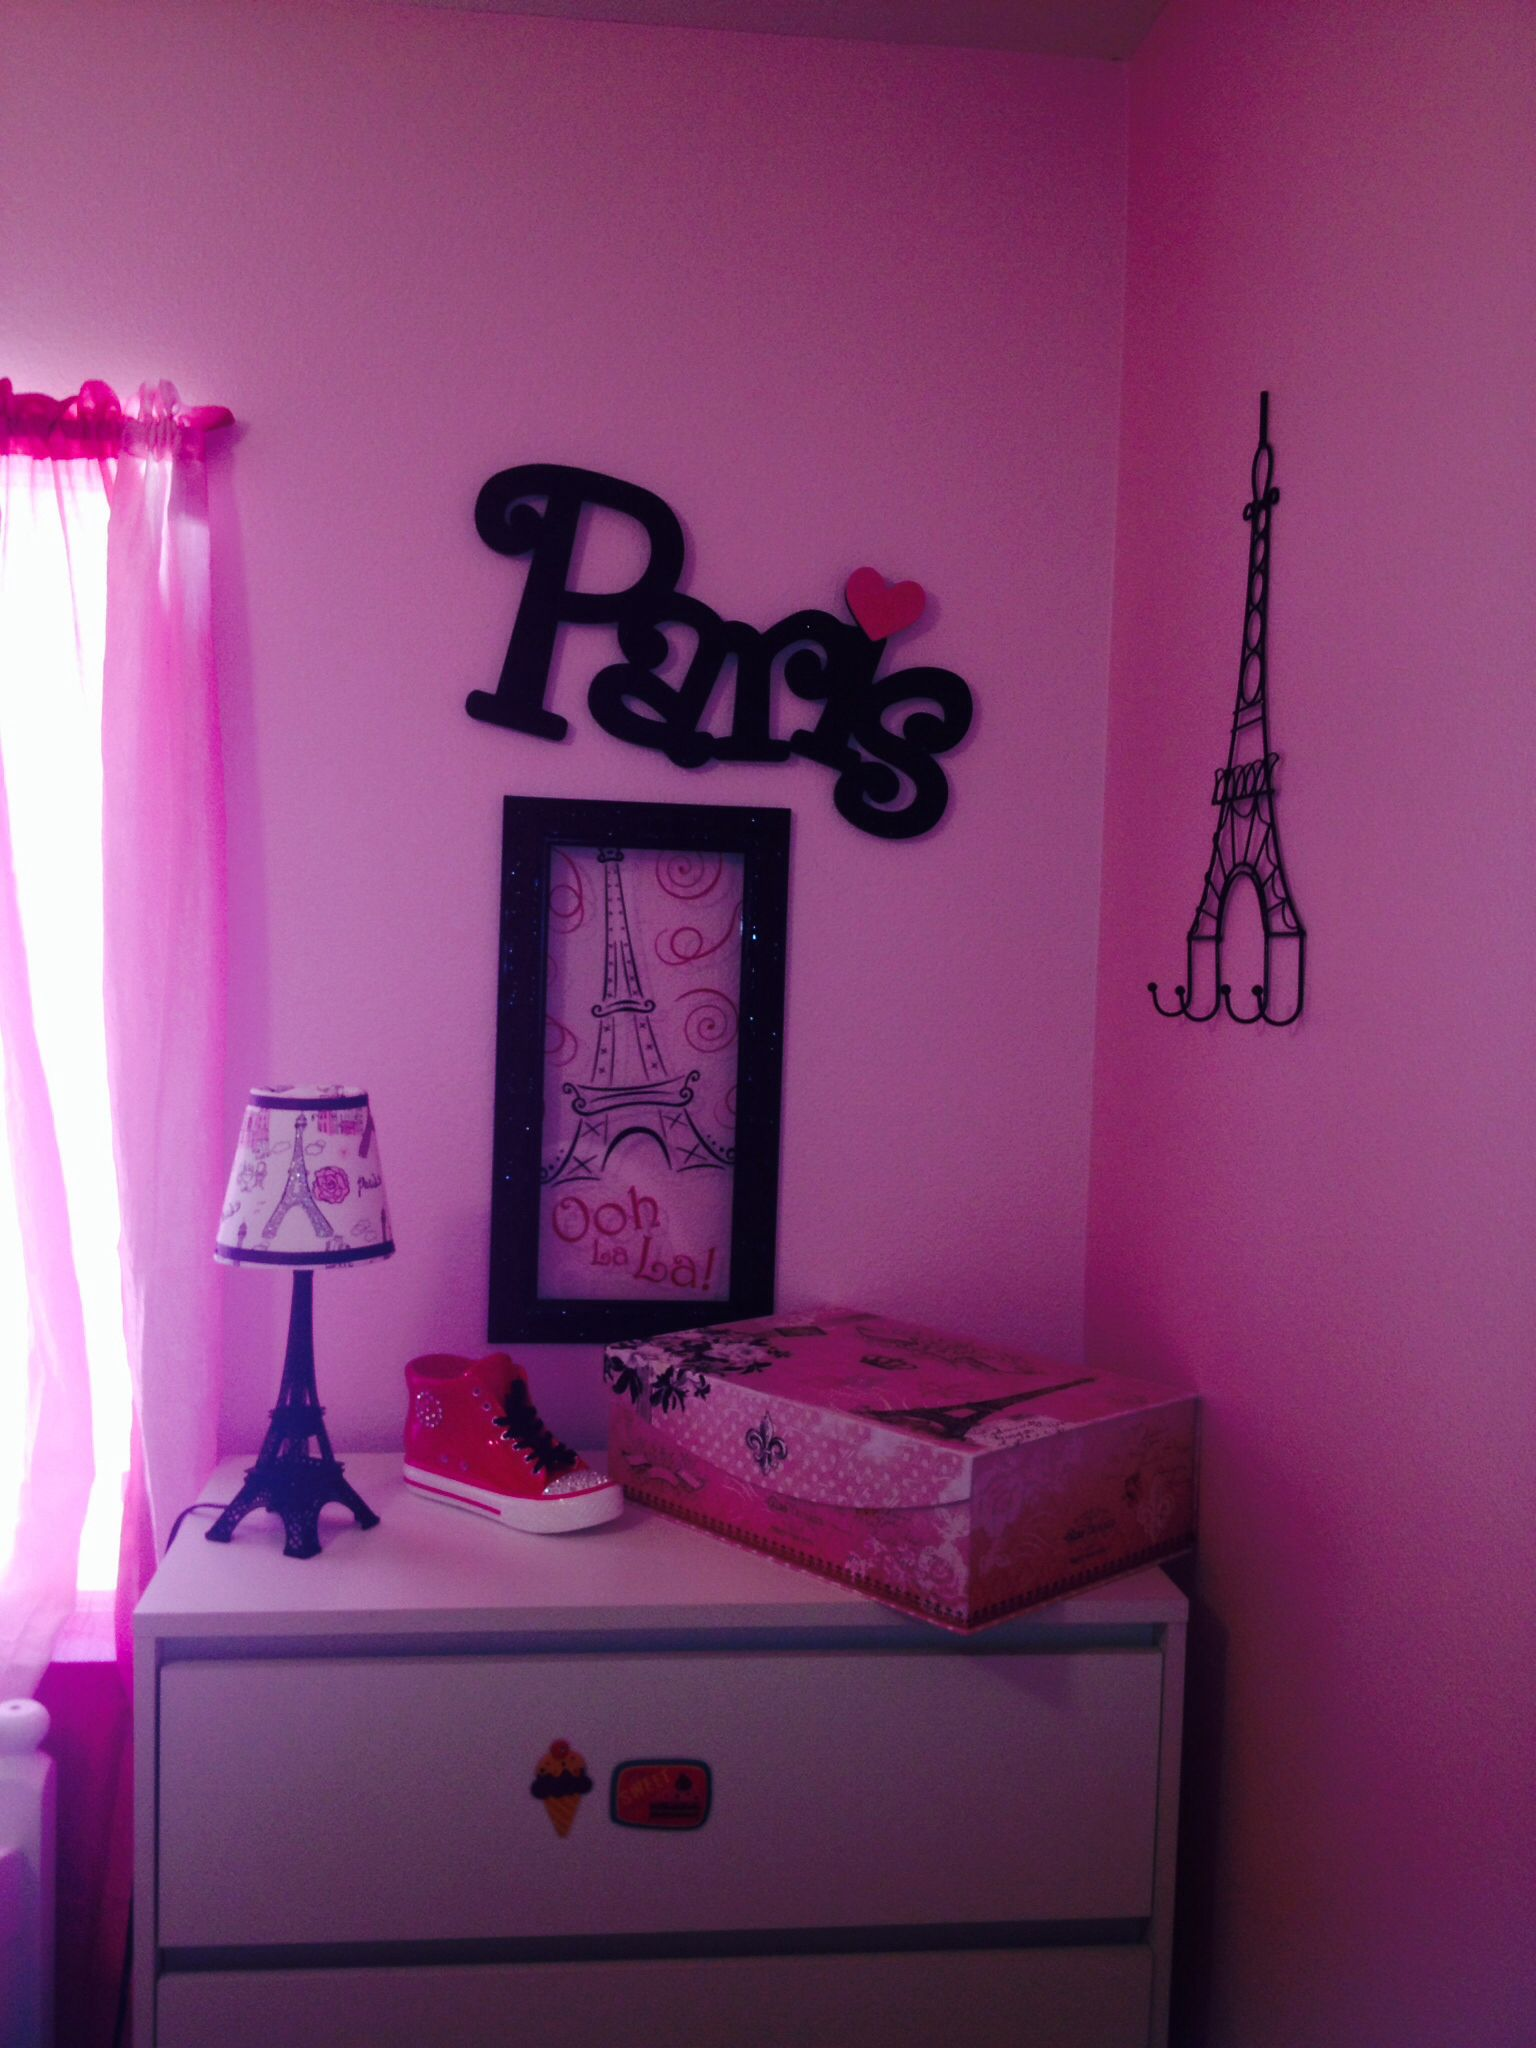 Paris Bedroom Mi Cuarto Pinterest Decoraciones De